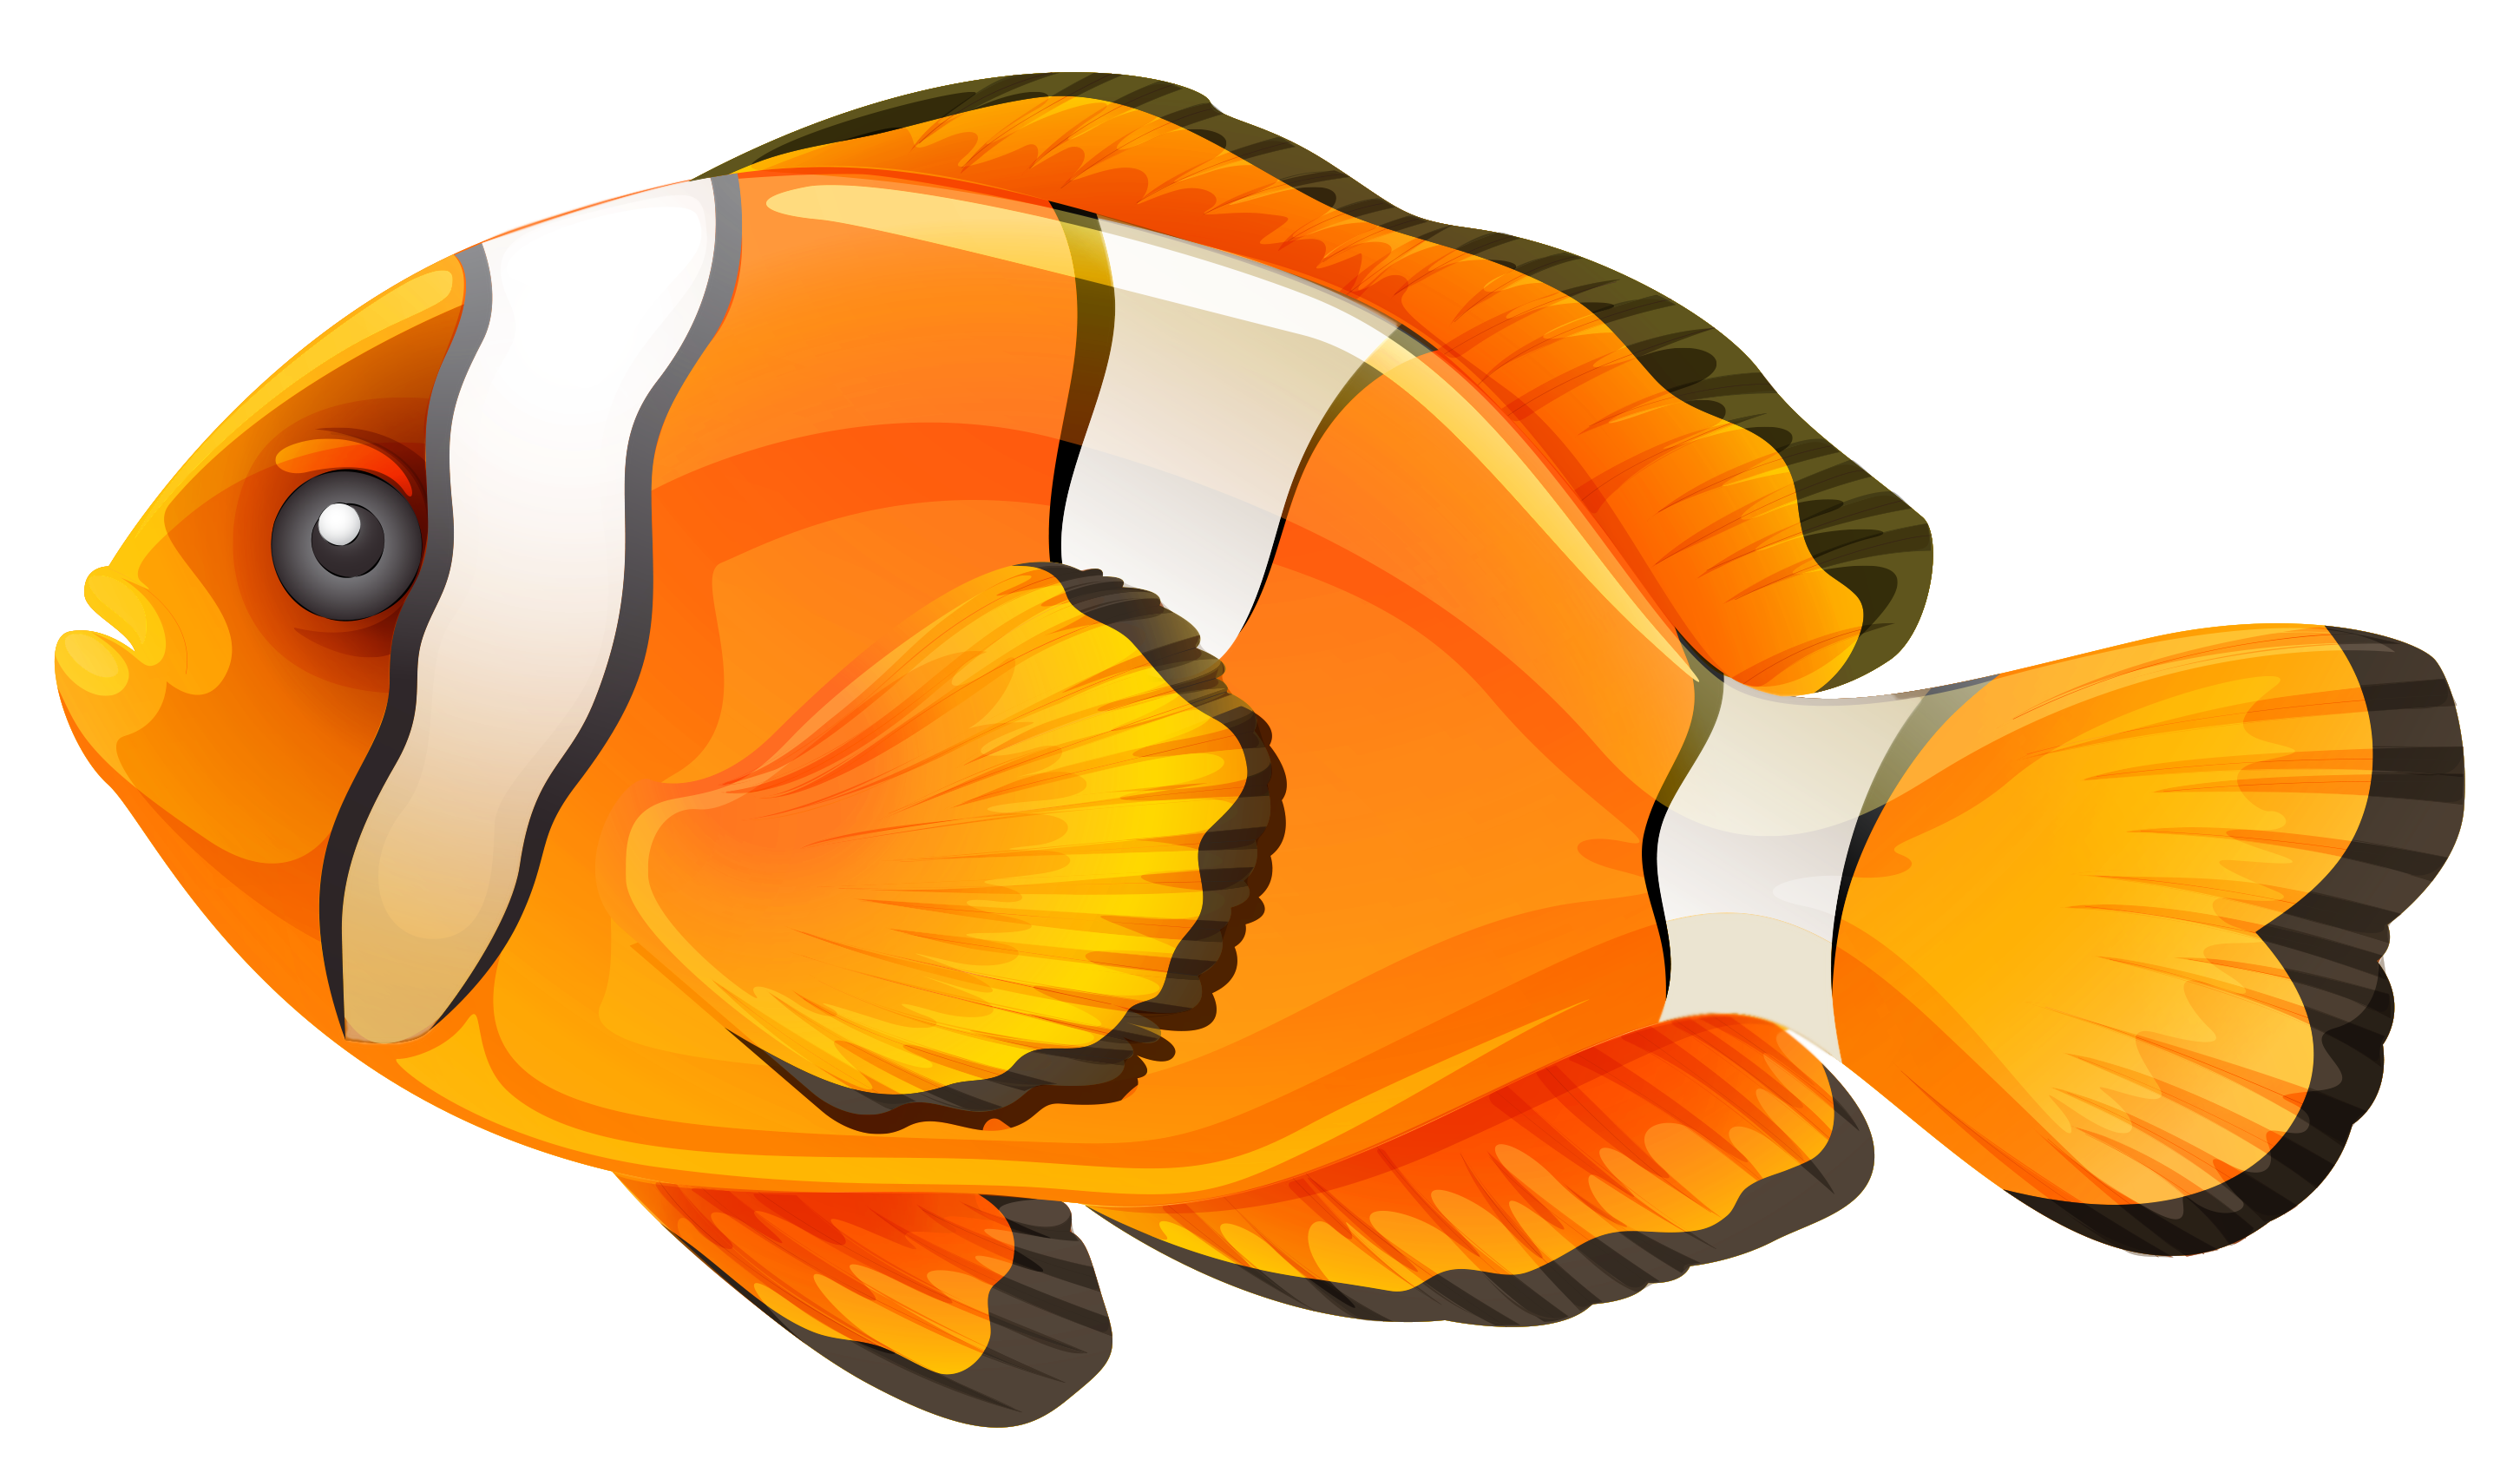 download fish free png transparent image and clipart how to make clipart background transparent how to make cliparts